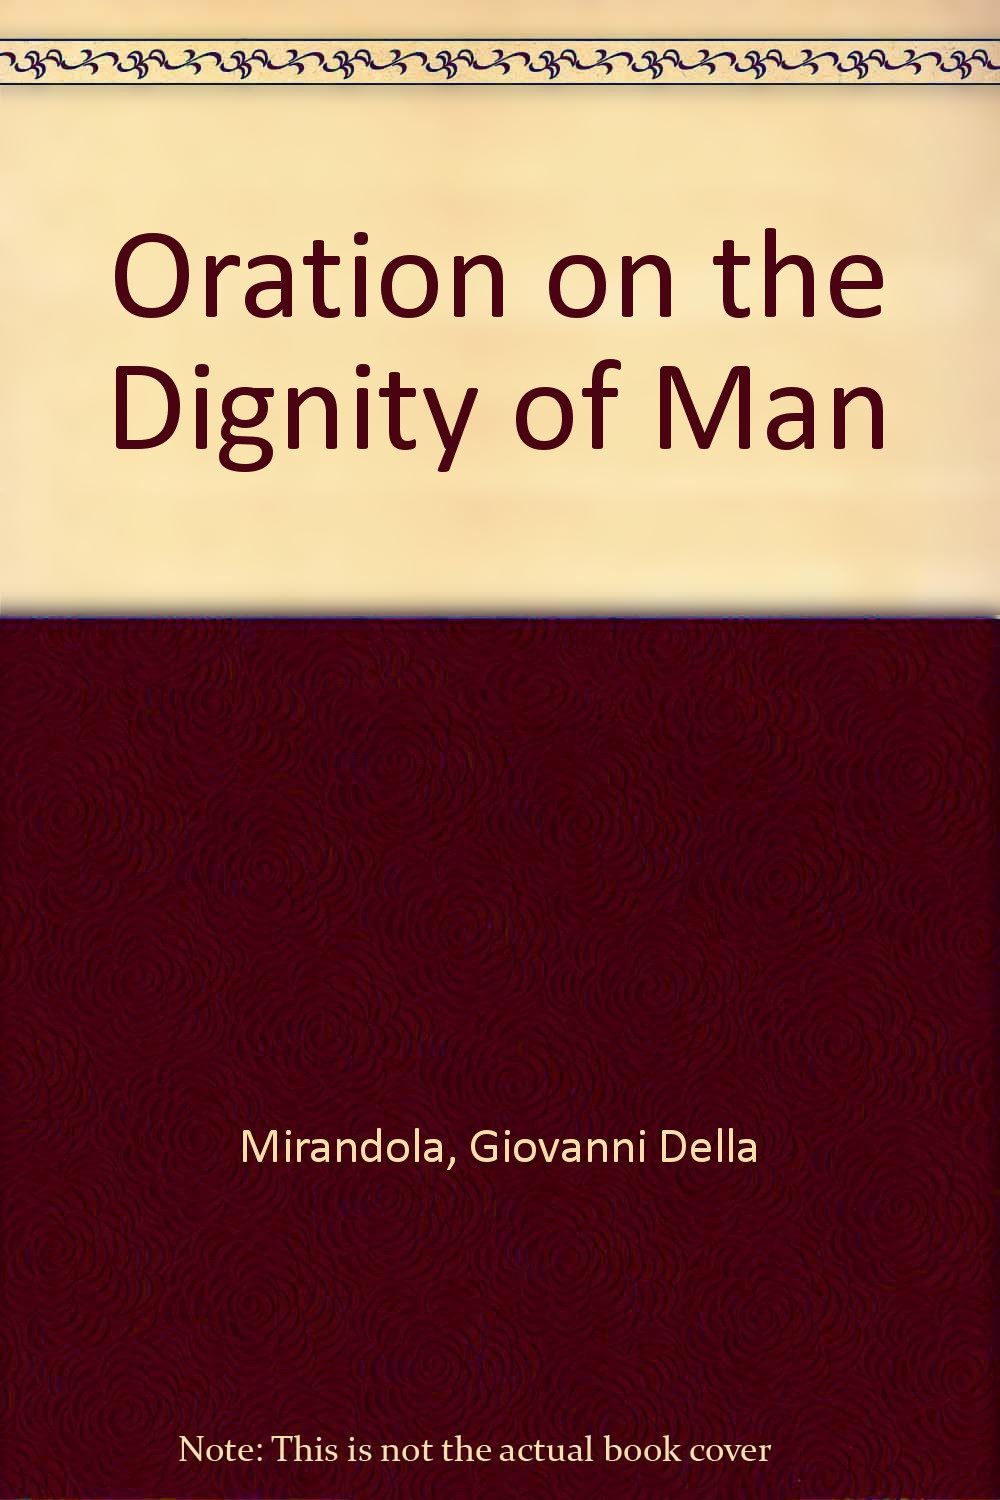 oration on the dignity of man